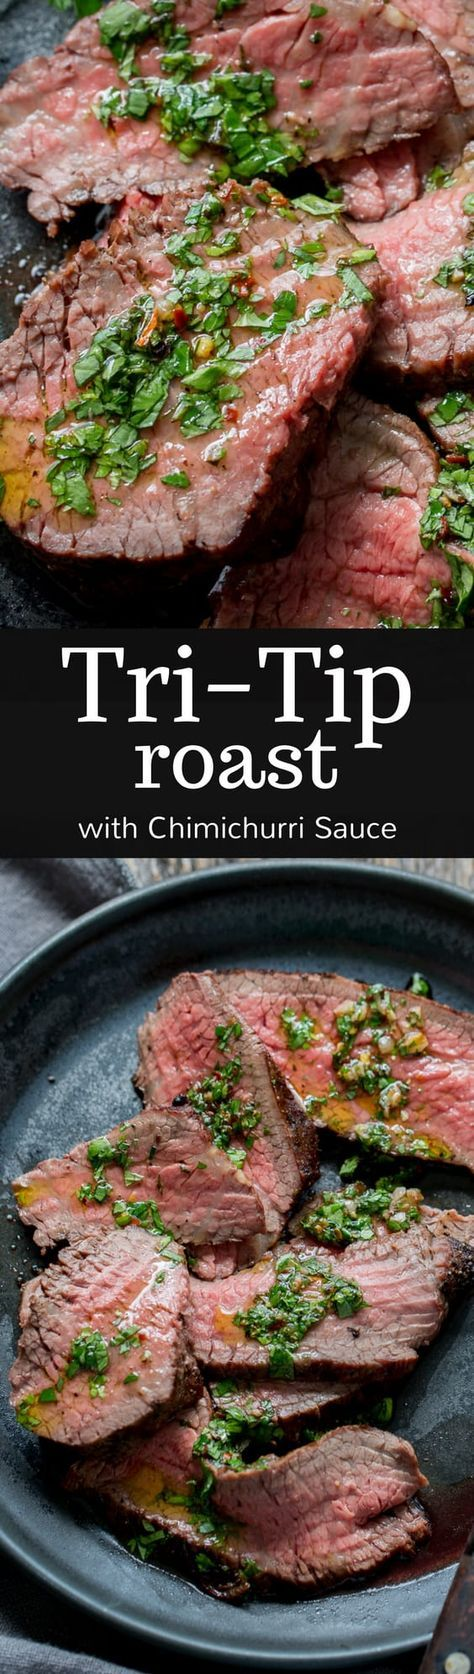 Tri-Tip Roast with Chimichurri Sauce - Chimichurri is a delicious, bright and bold green sauce often used as a condiment for grilled meat like the Tri-Tip roast :  savingroomfordessert   #roast #tritip #chimichurri #dinner #roastbeef